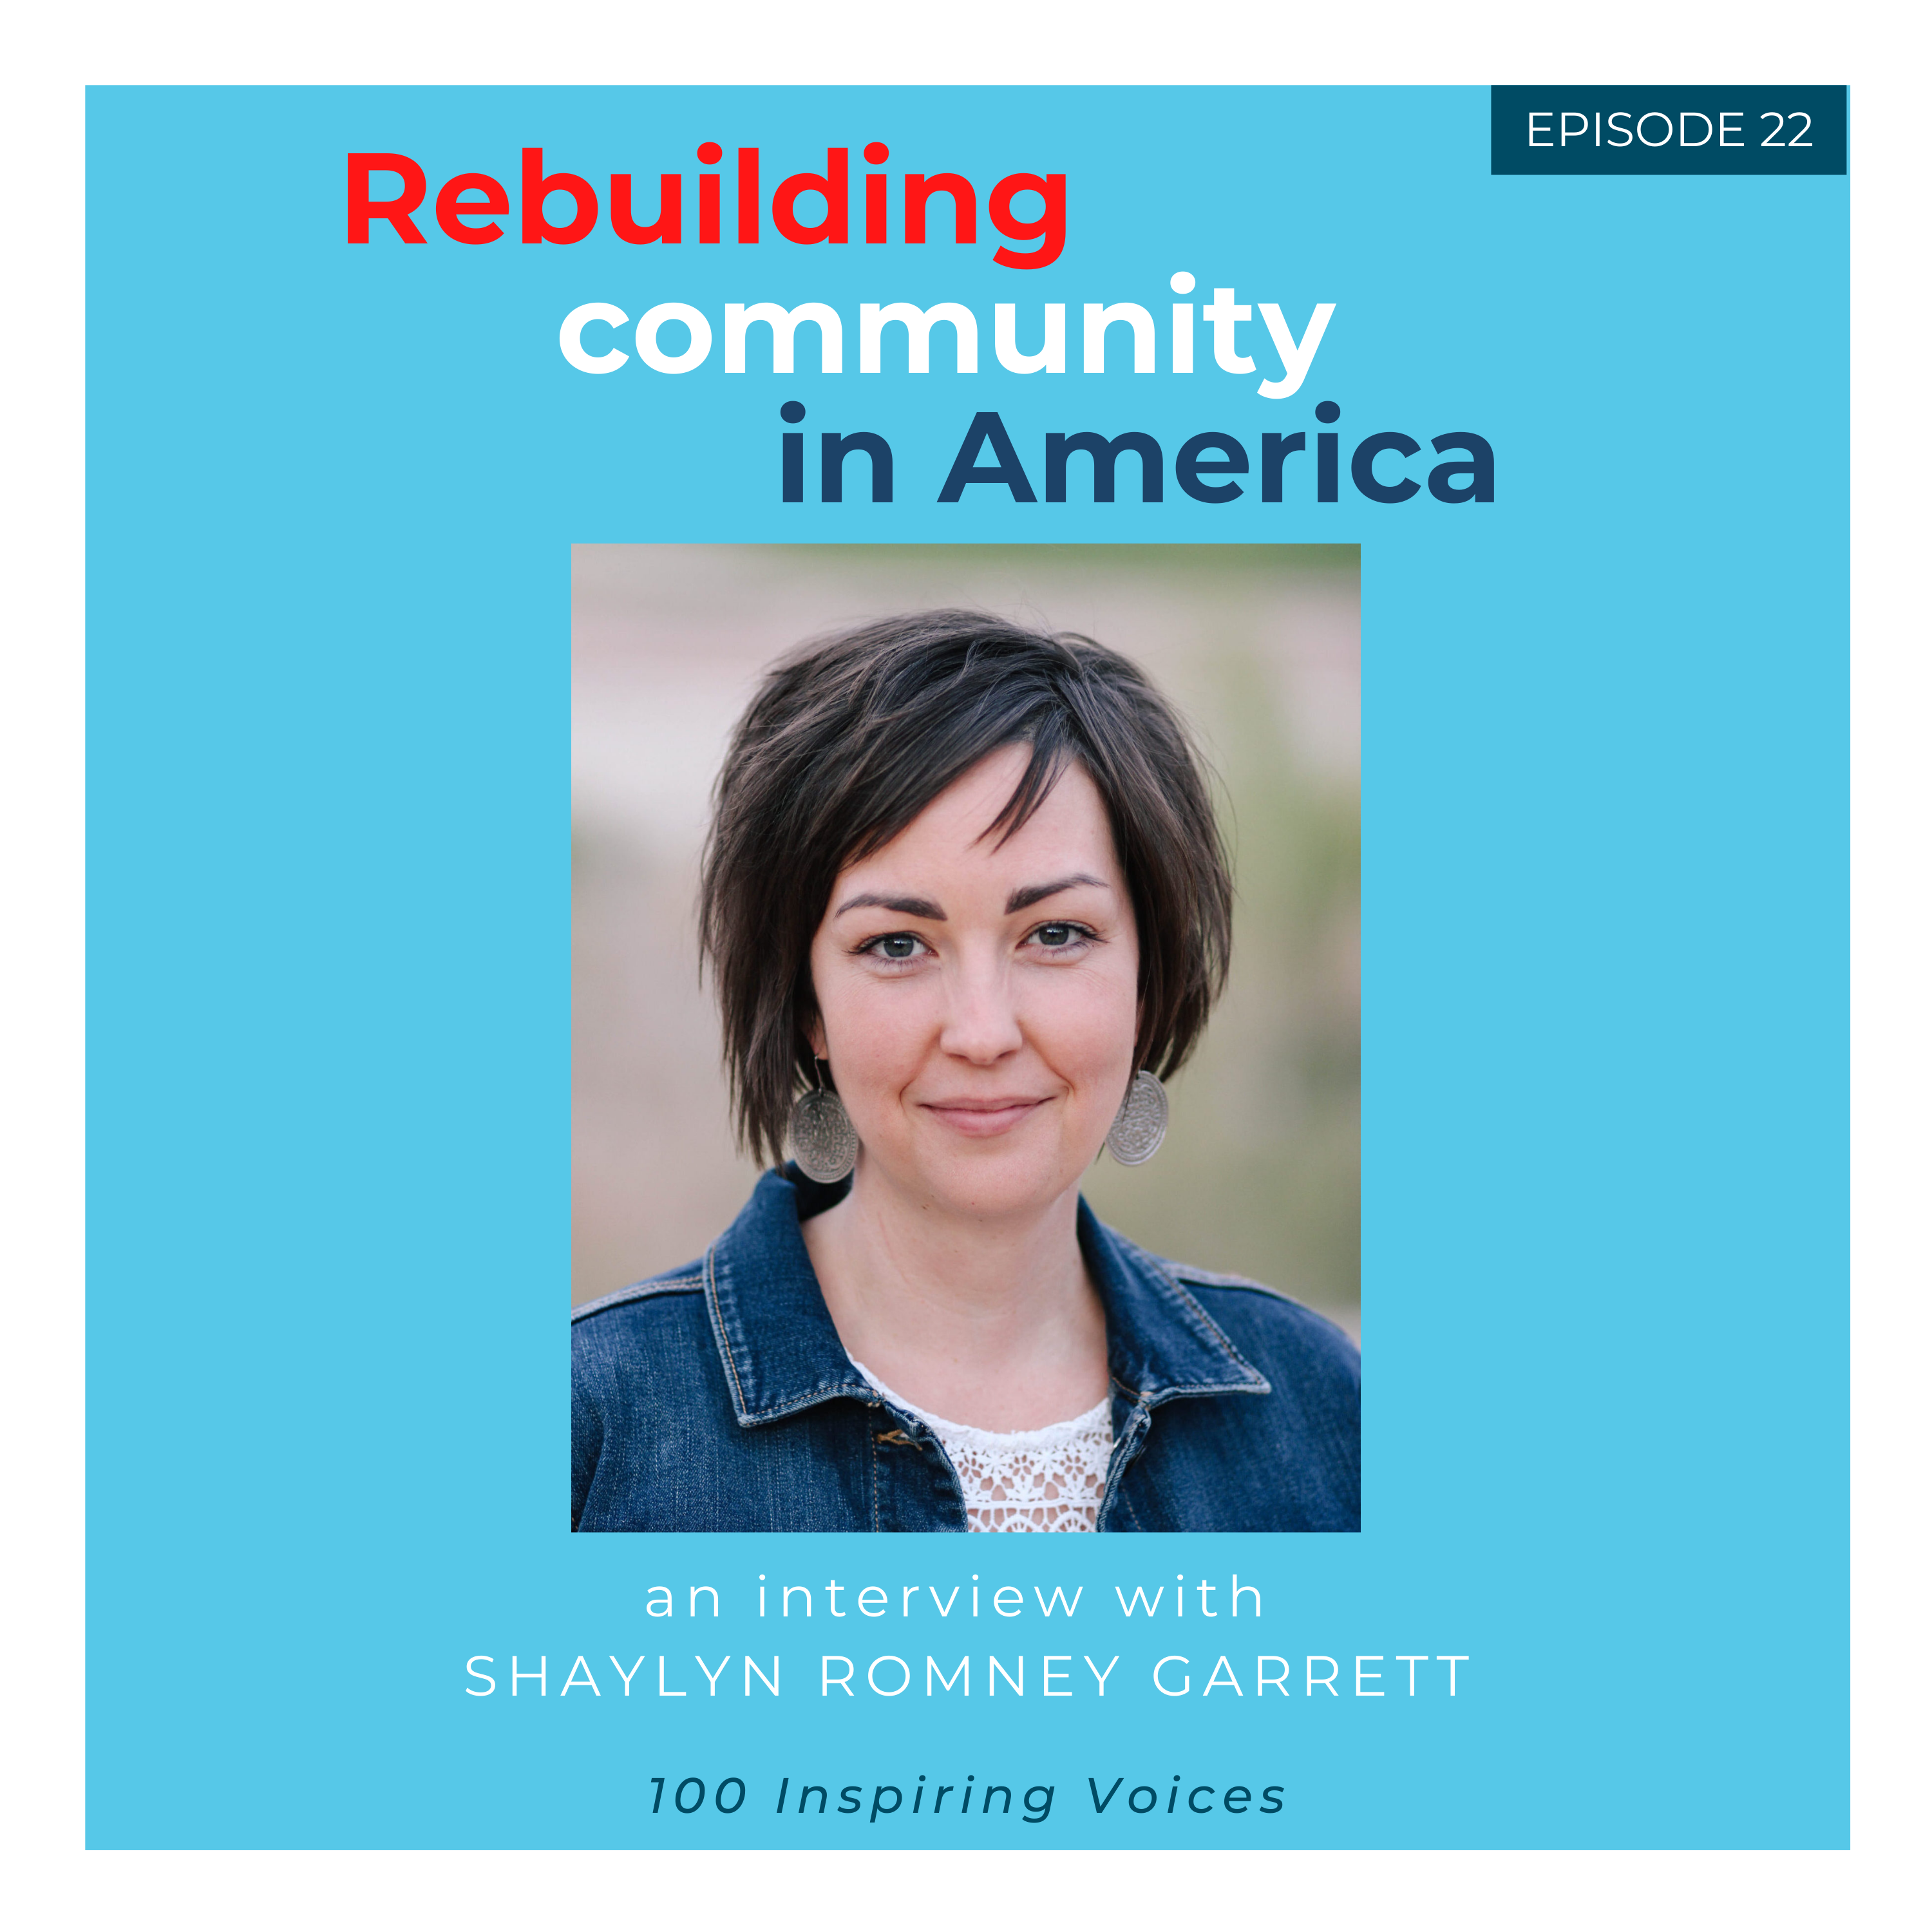 100 Inspiring Voices | Episode #22 | Shaylyn Romney Garrett | Community, connection, and belonging